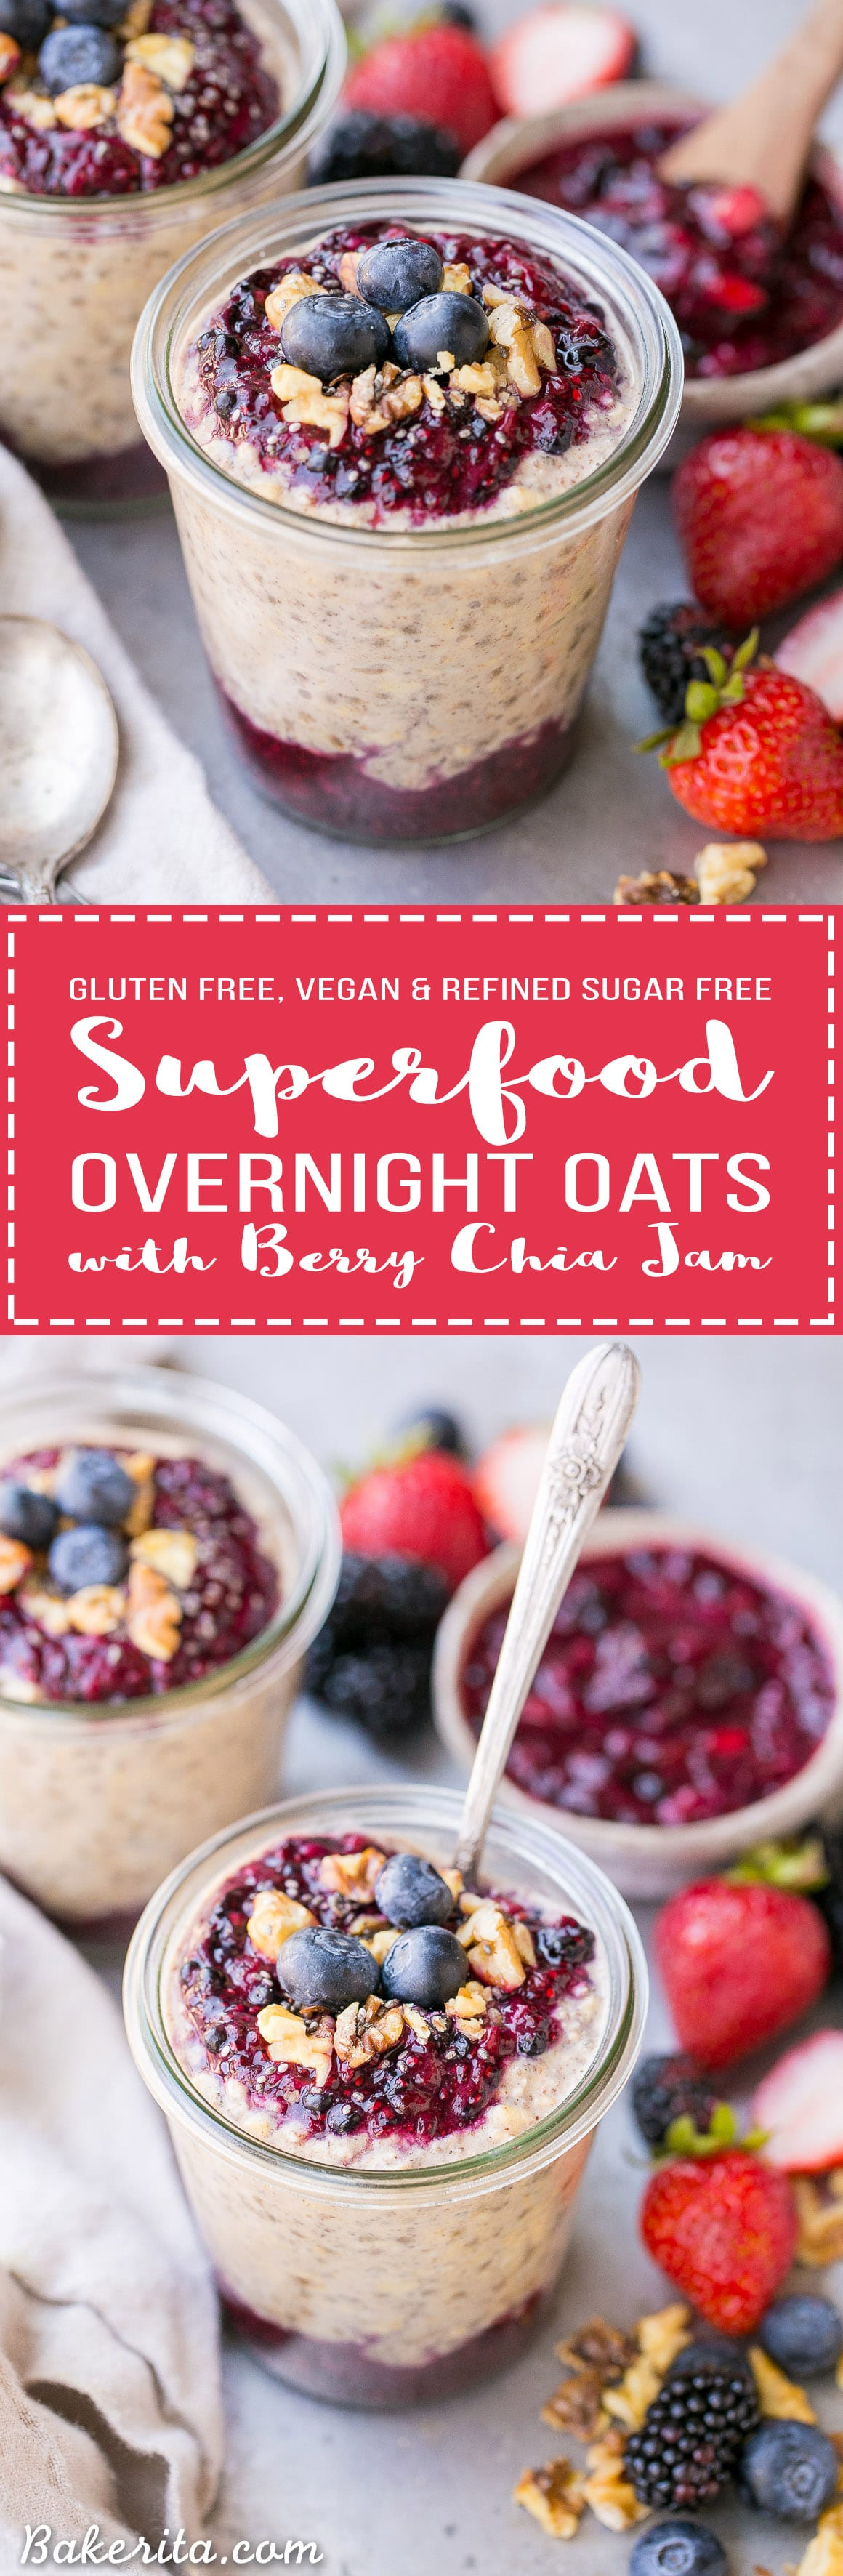 These Superfood Overnight Oats with Easy Berry Chia Jam are the perfect filling breakfast, loaded with superfoods to give your day a kickstart. This gluten-free, refined sugar-free and vegan recipe can be prepped in a just few minutes for a delicious grab-and-go breakfast.